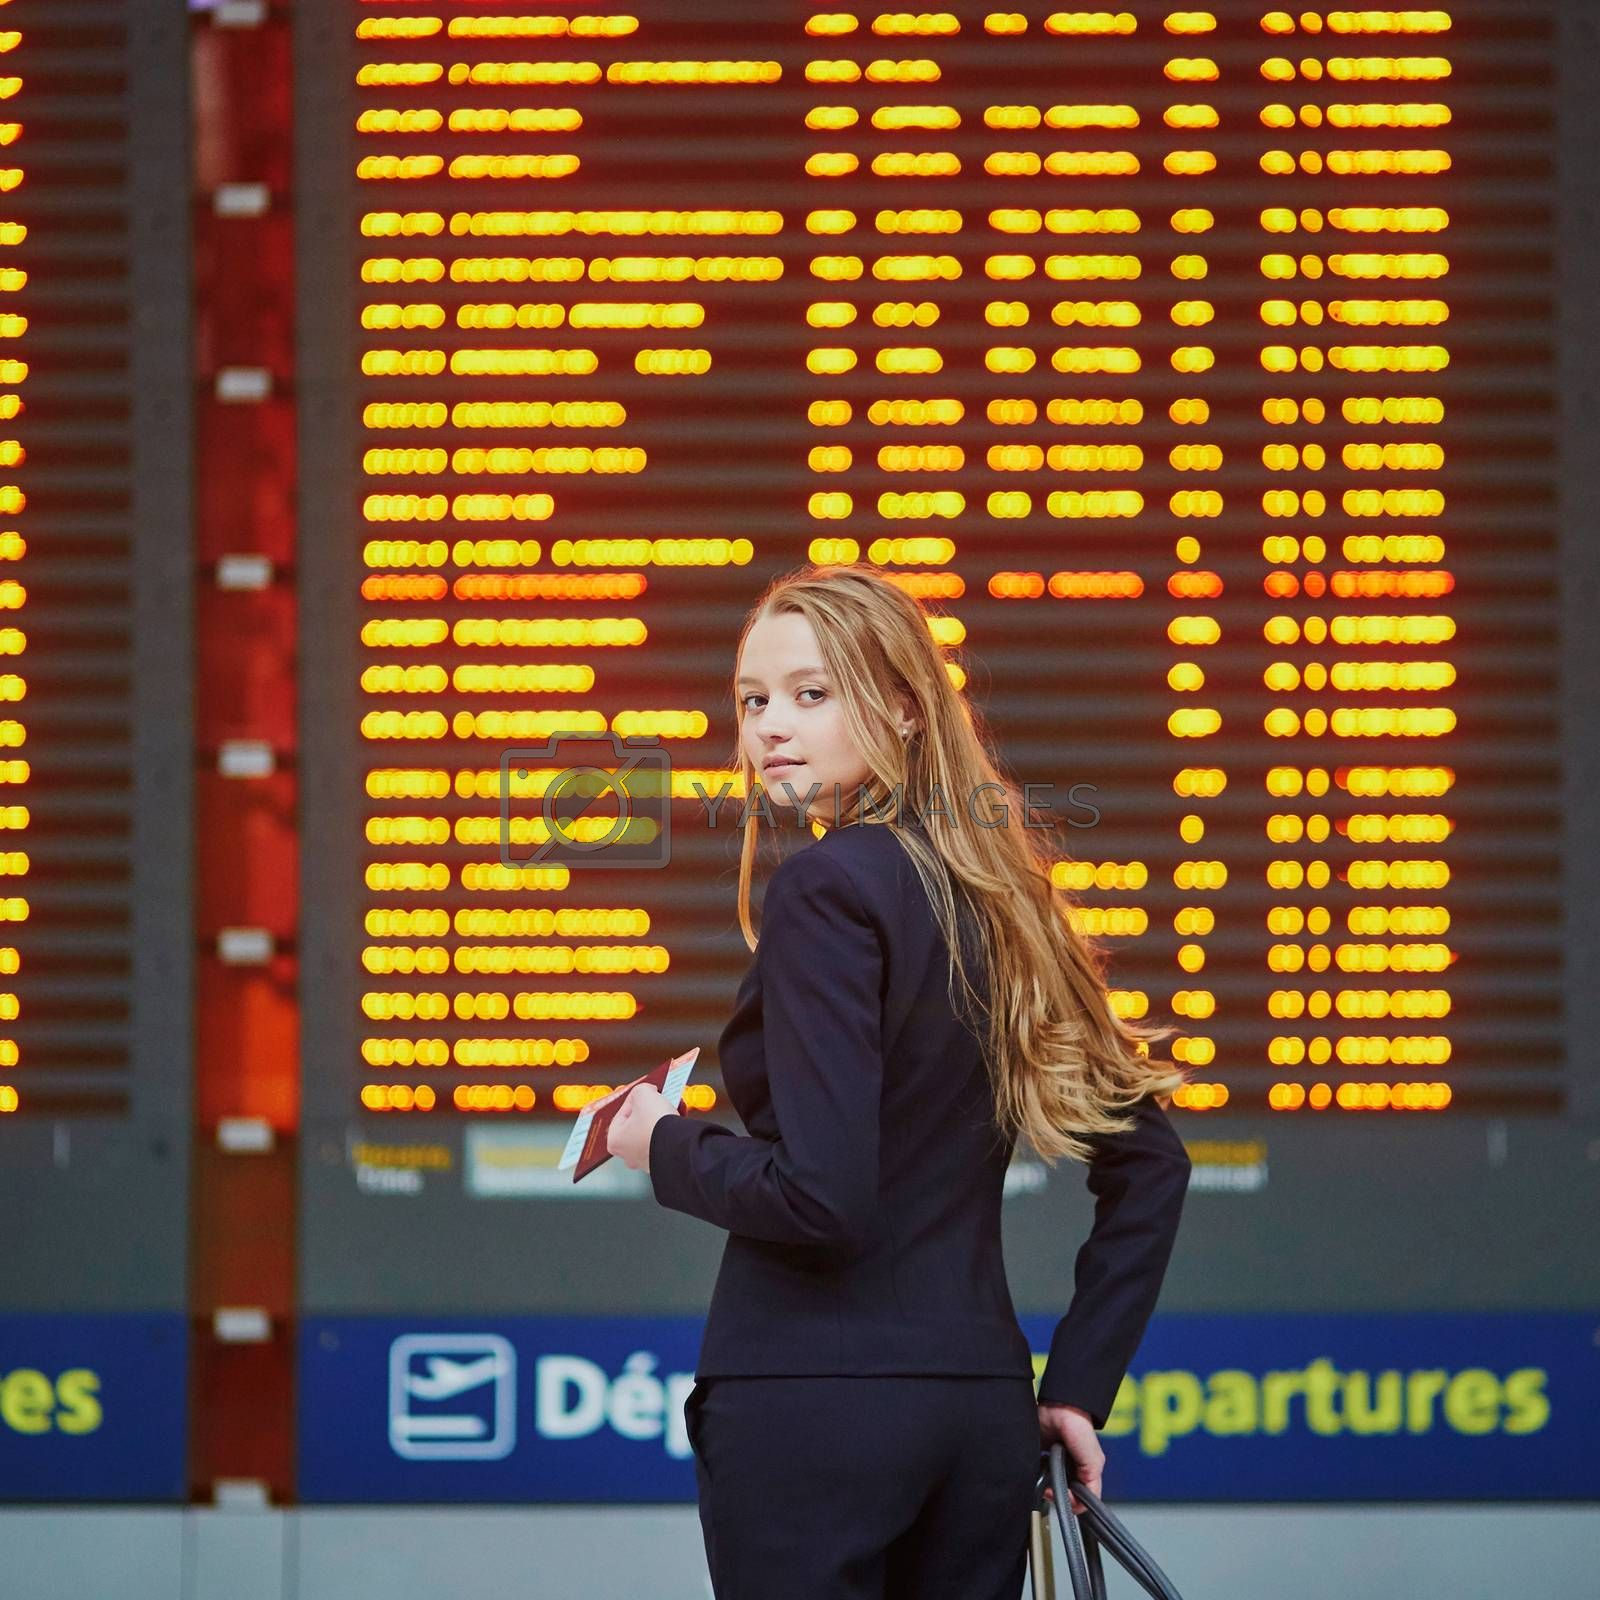 Young woman in international airport near large information display